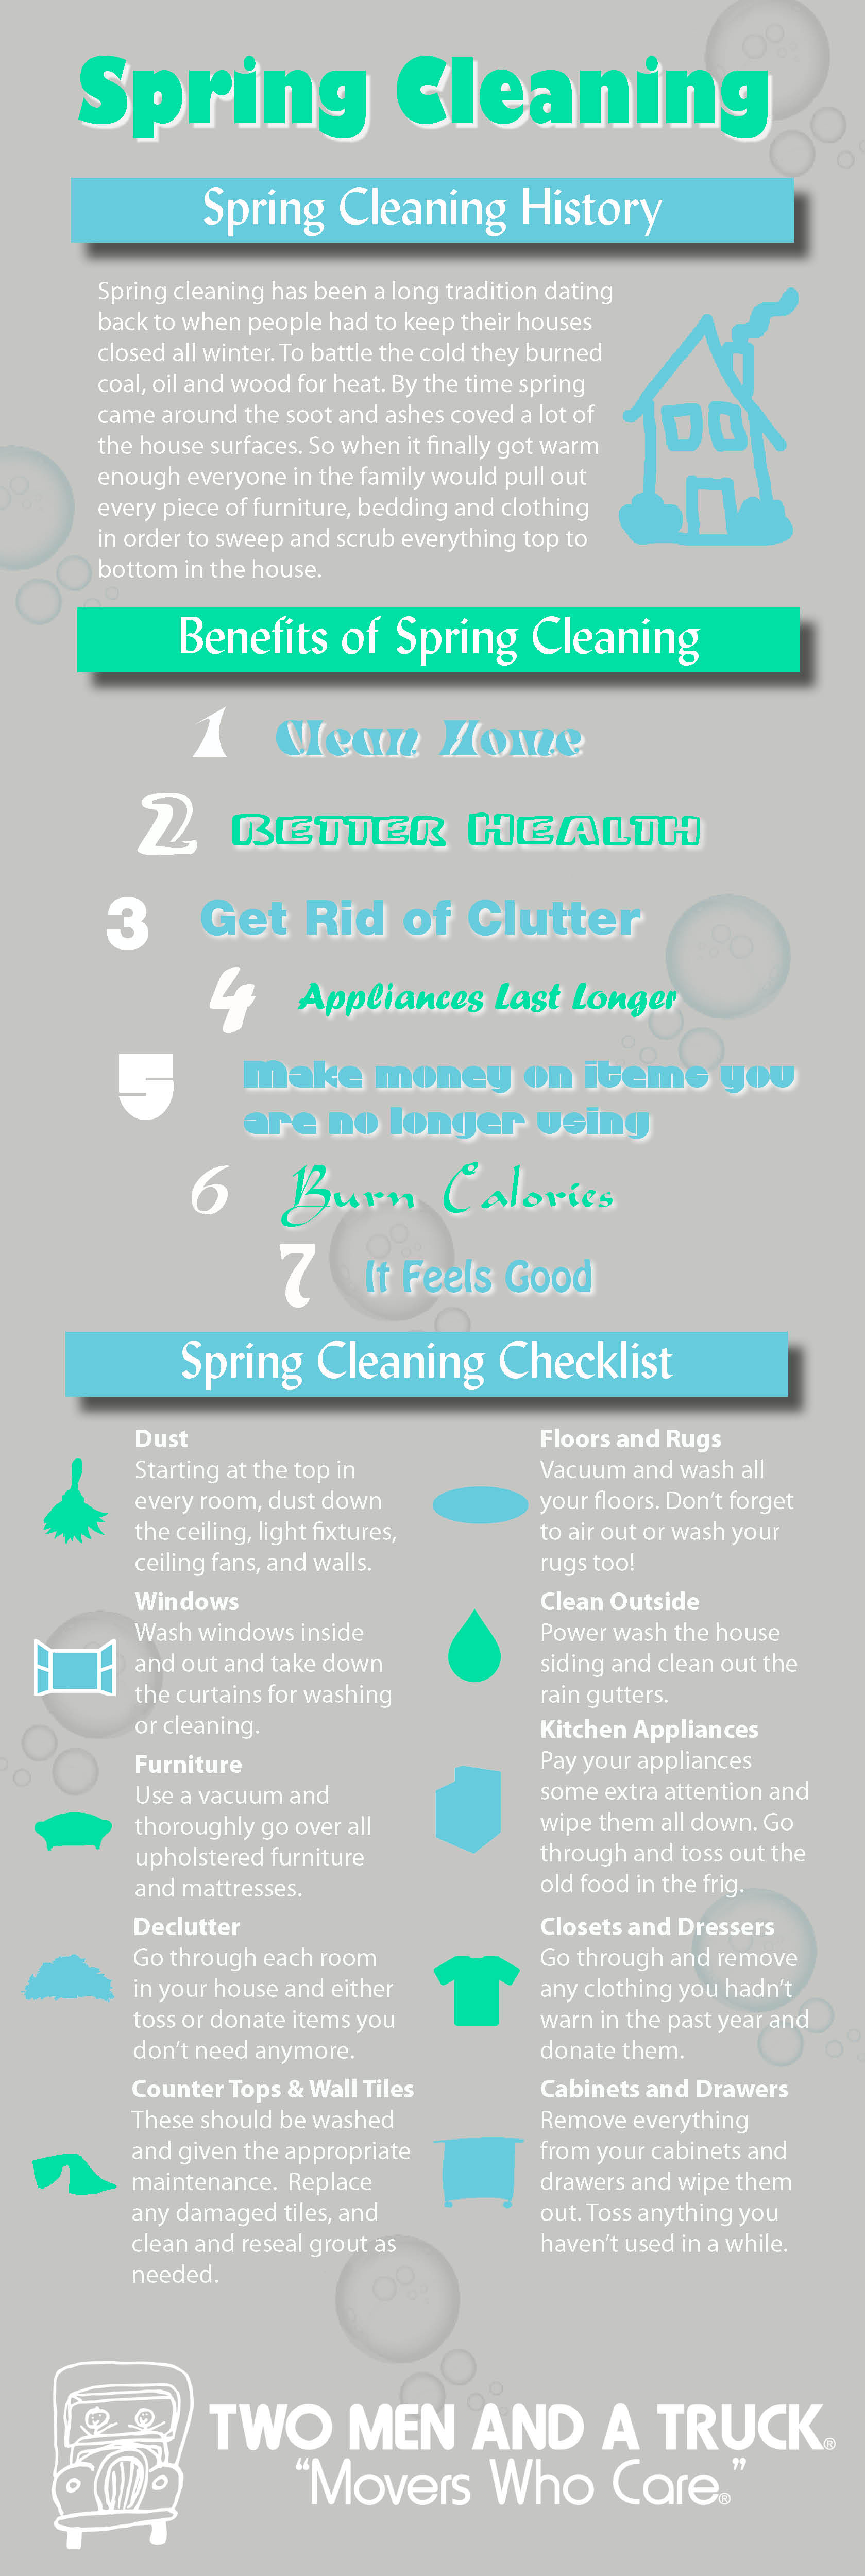 Spring Cleaning Infographic Two Men And A Truck